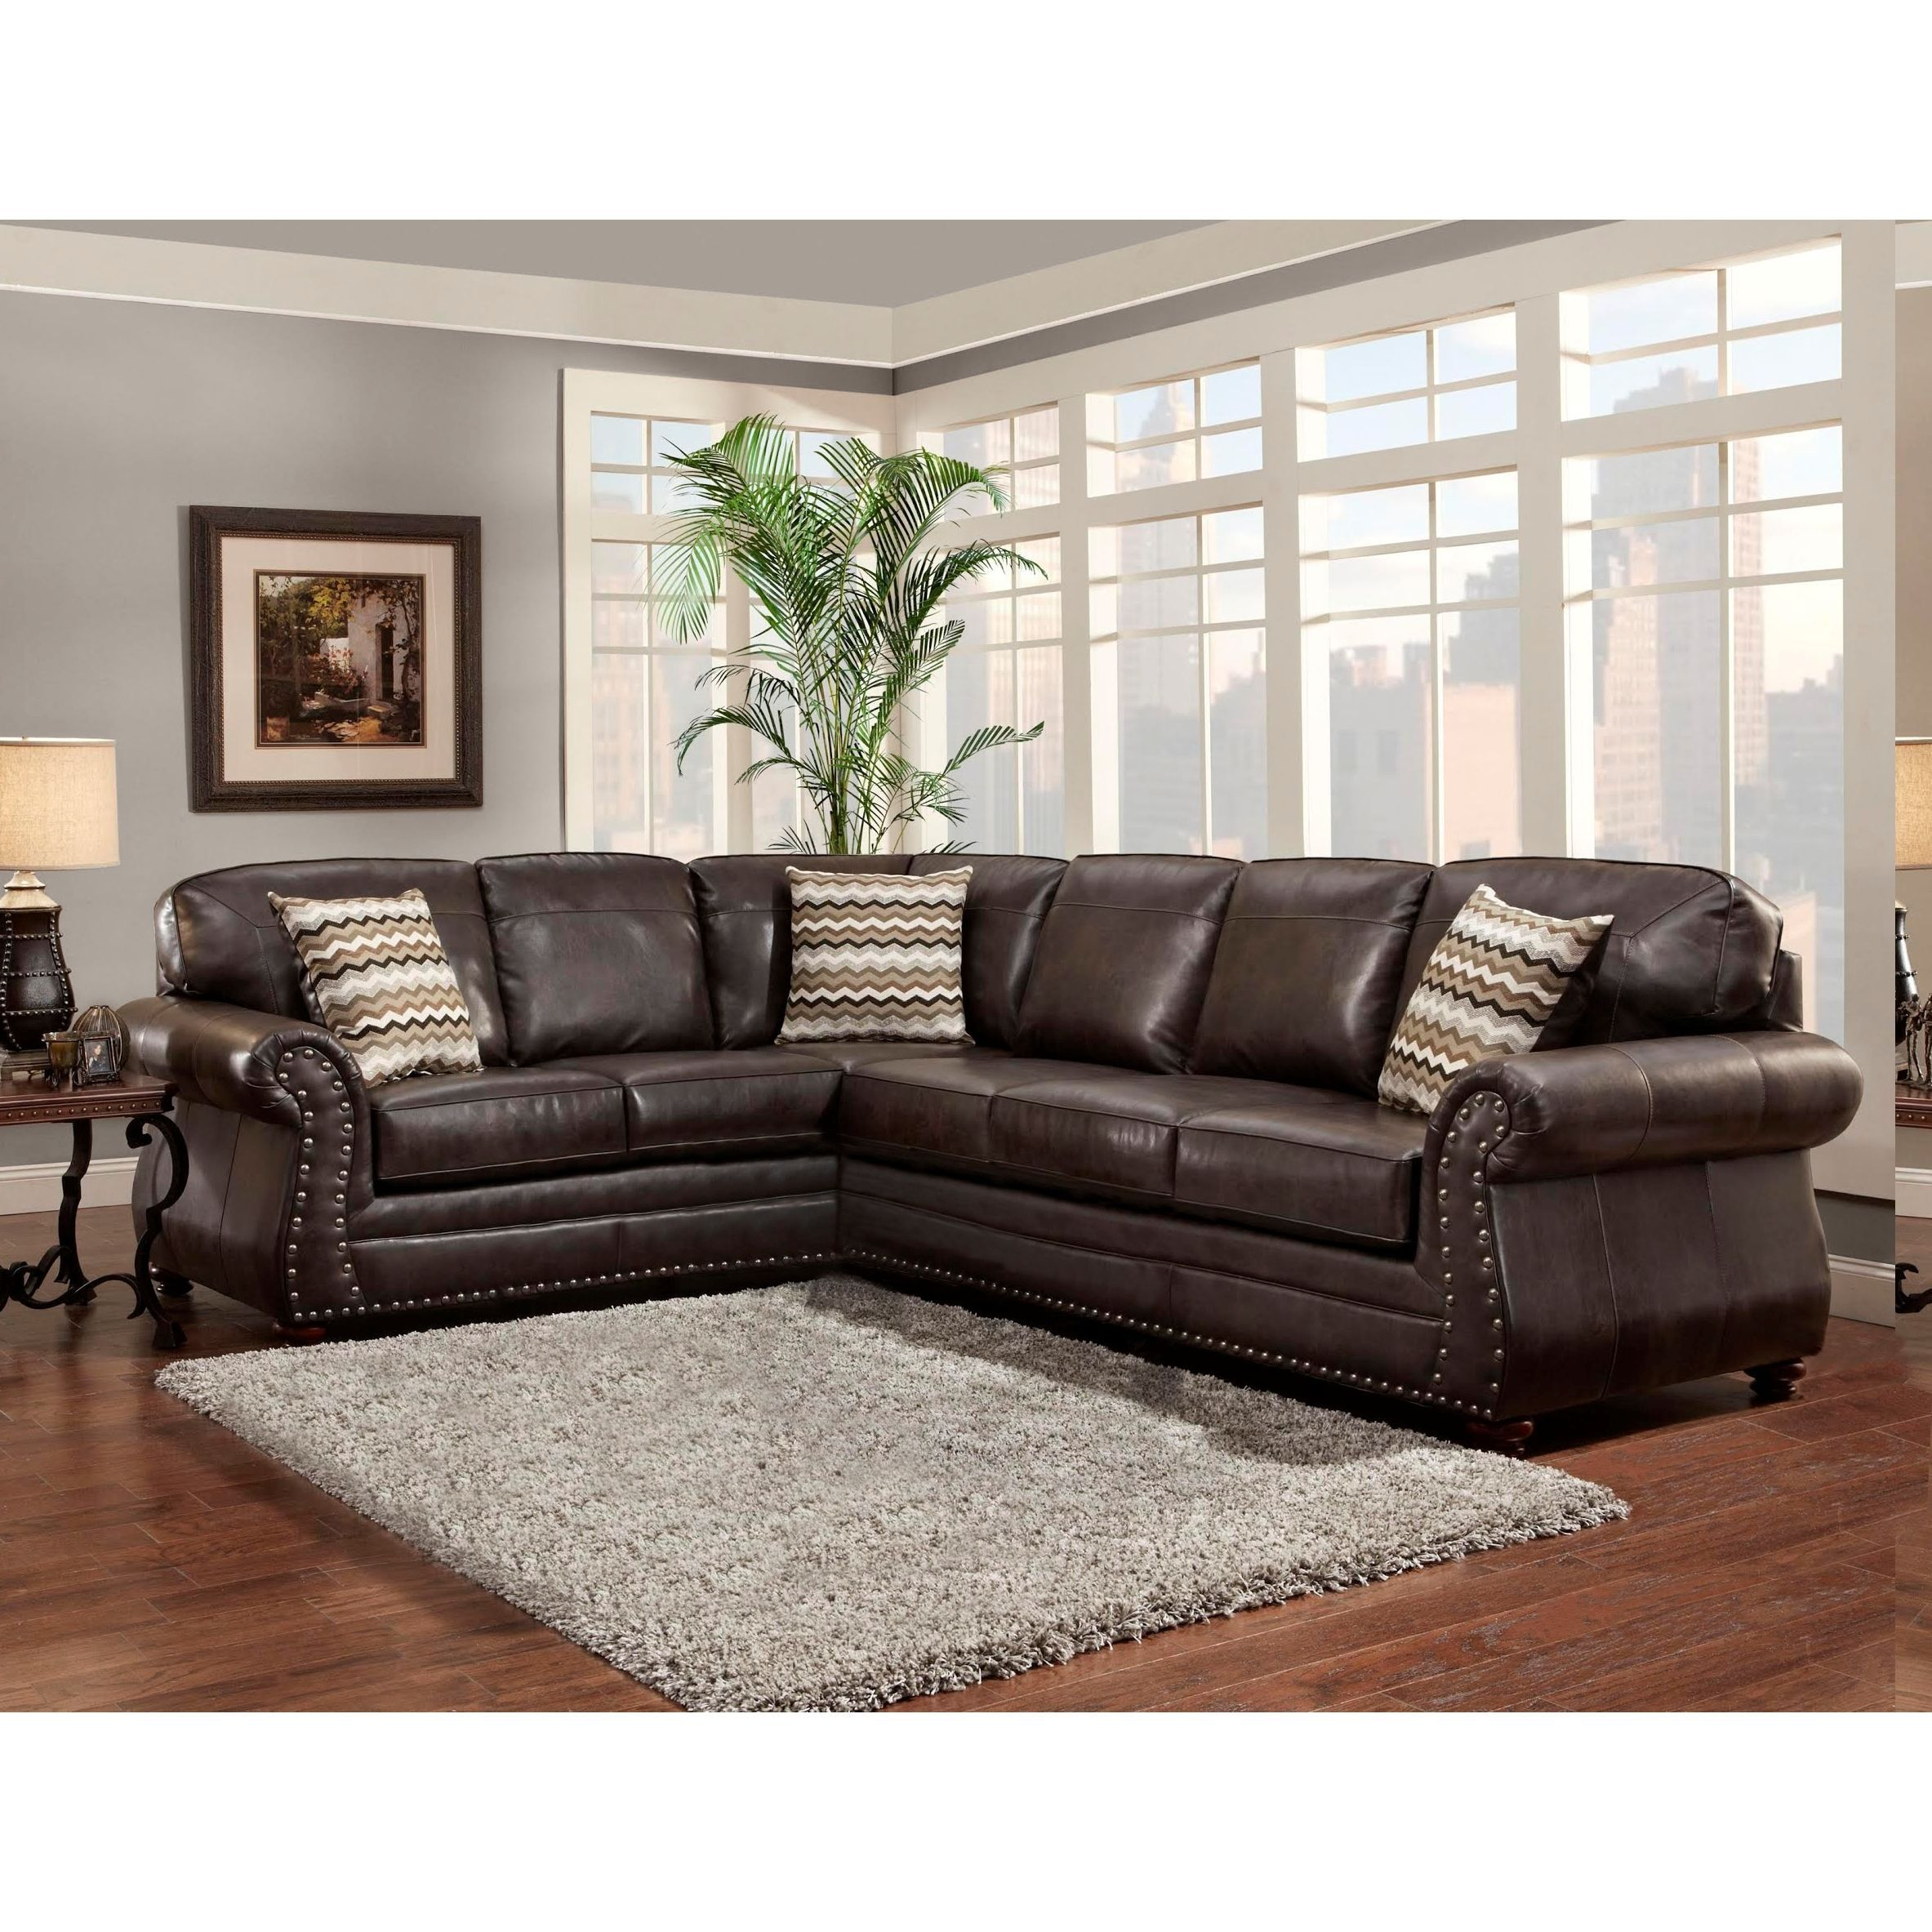 Beige Brown Grey Taupe Leather 1500 Sectional Sofas Provide Ample Seating With Sectional